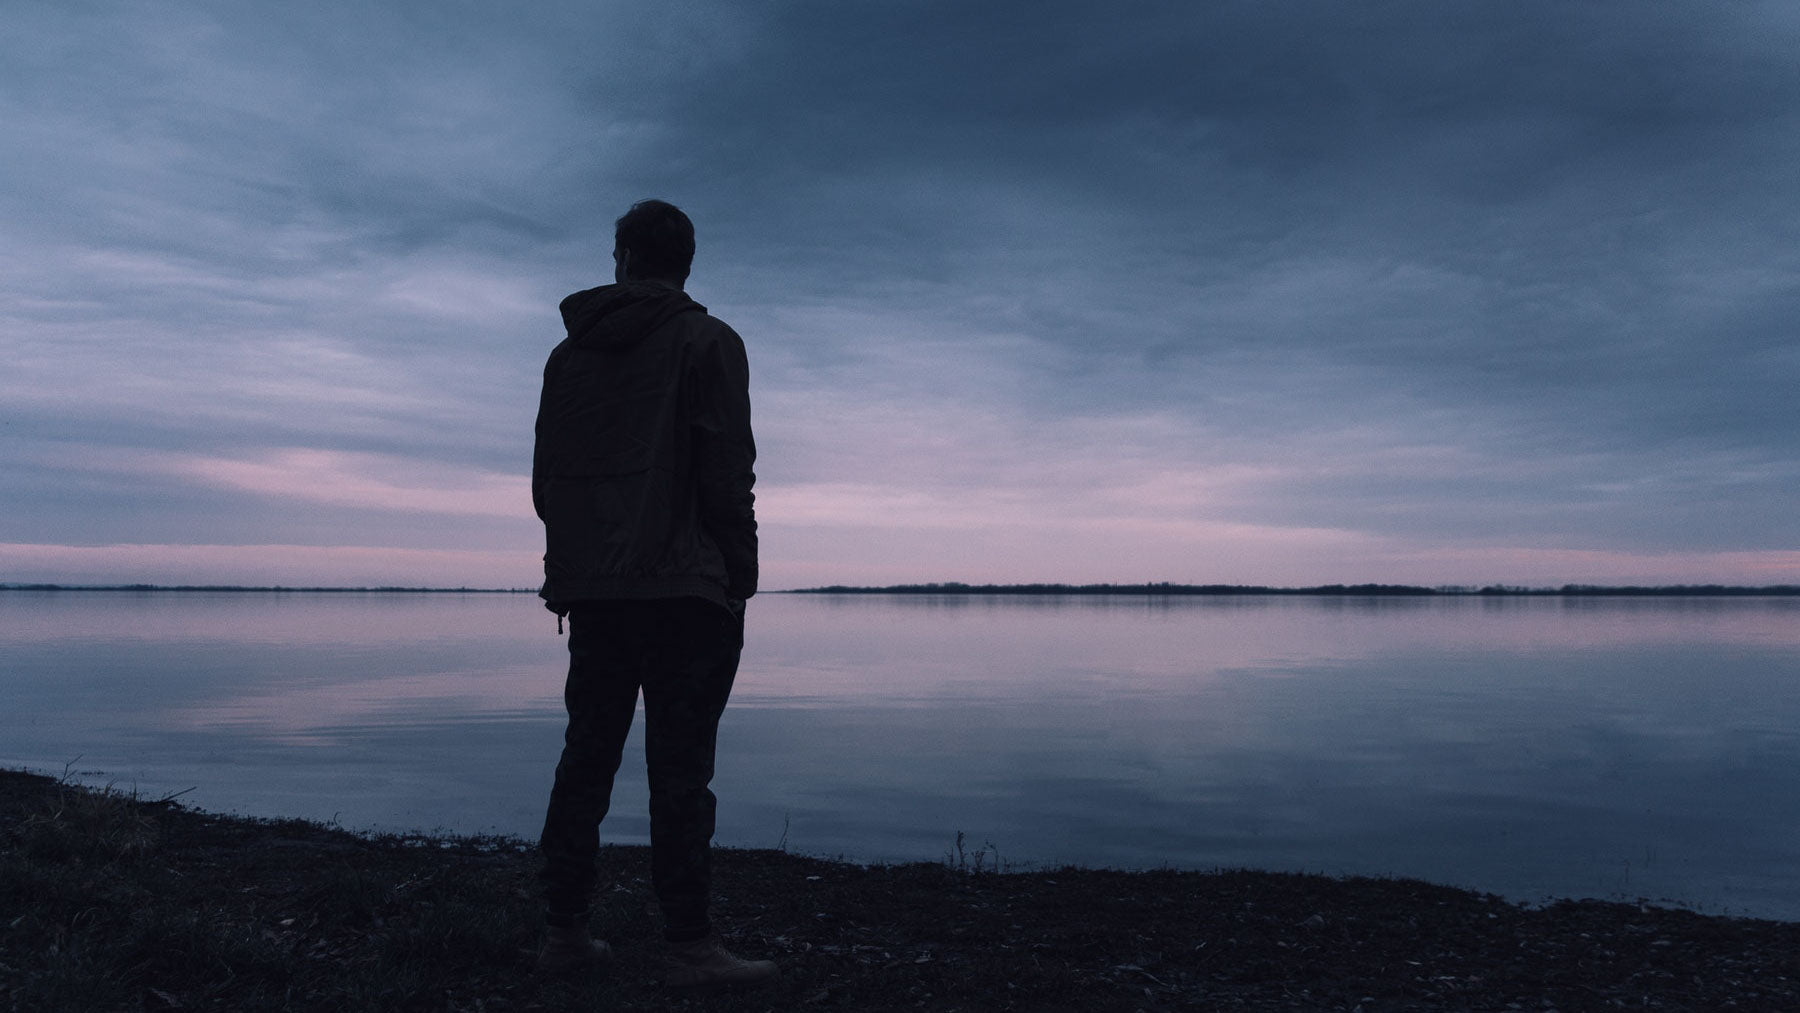 man looking sad at edge of lake